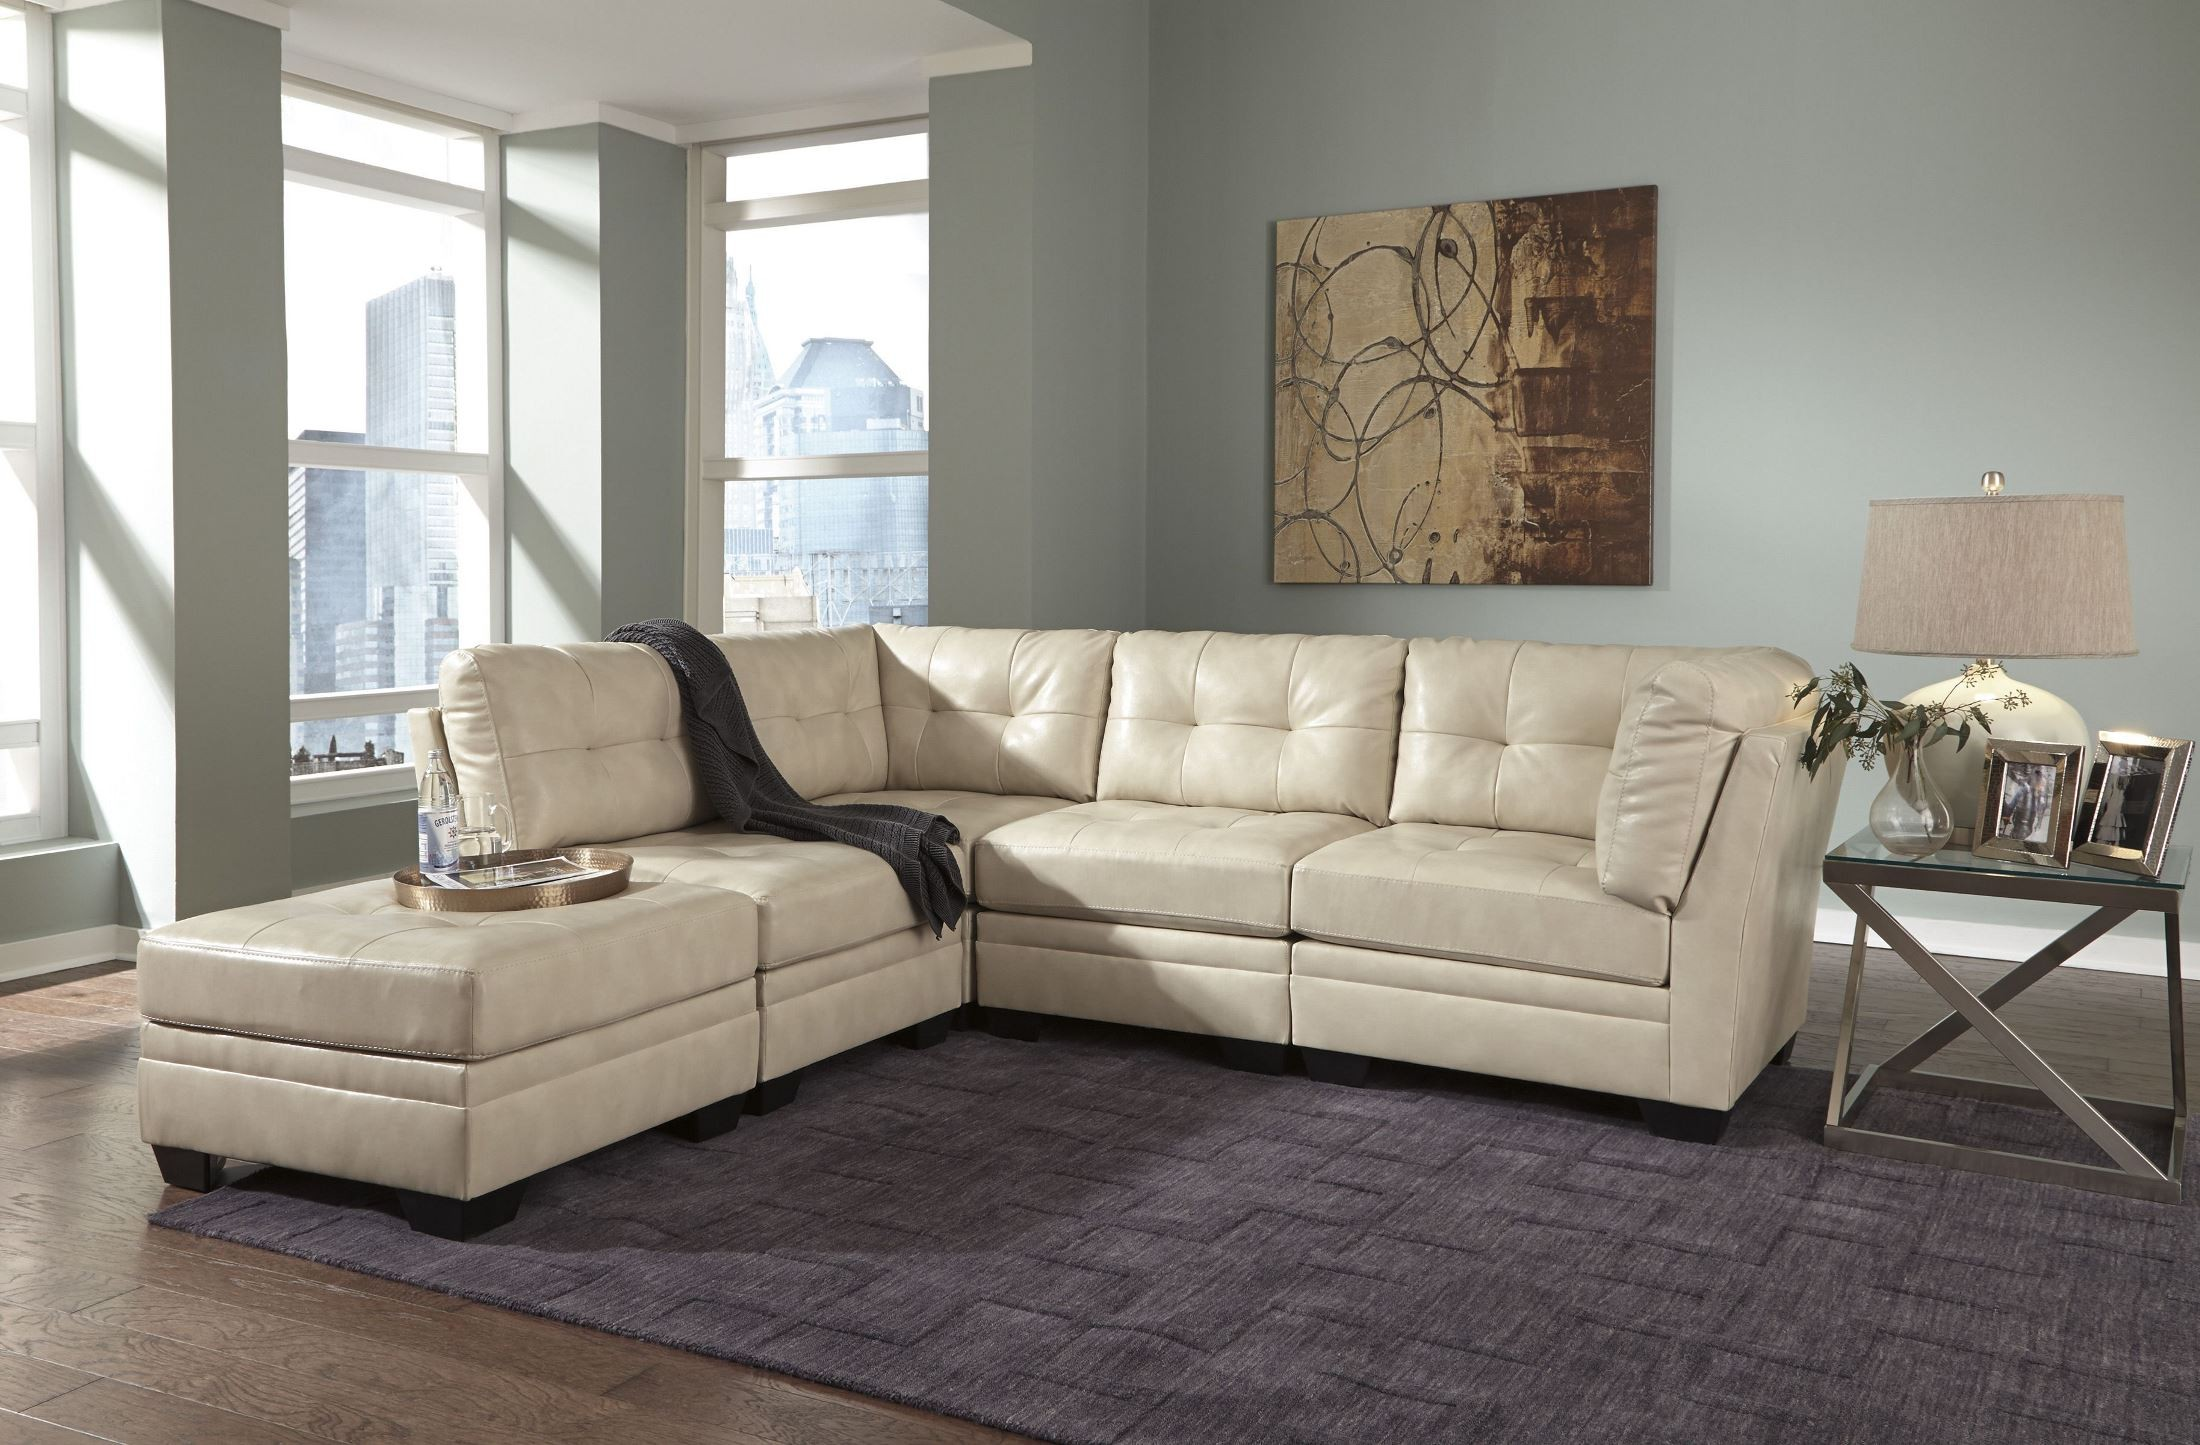 Khalil DuraBlend Taupe Sectional From Ashley 6180451